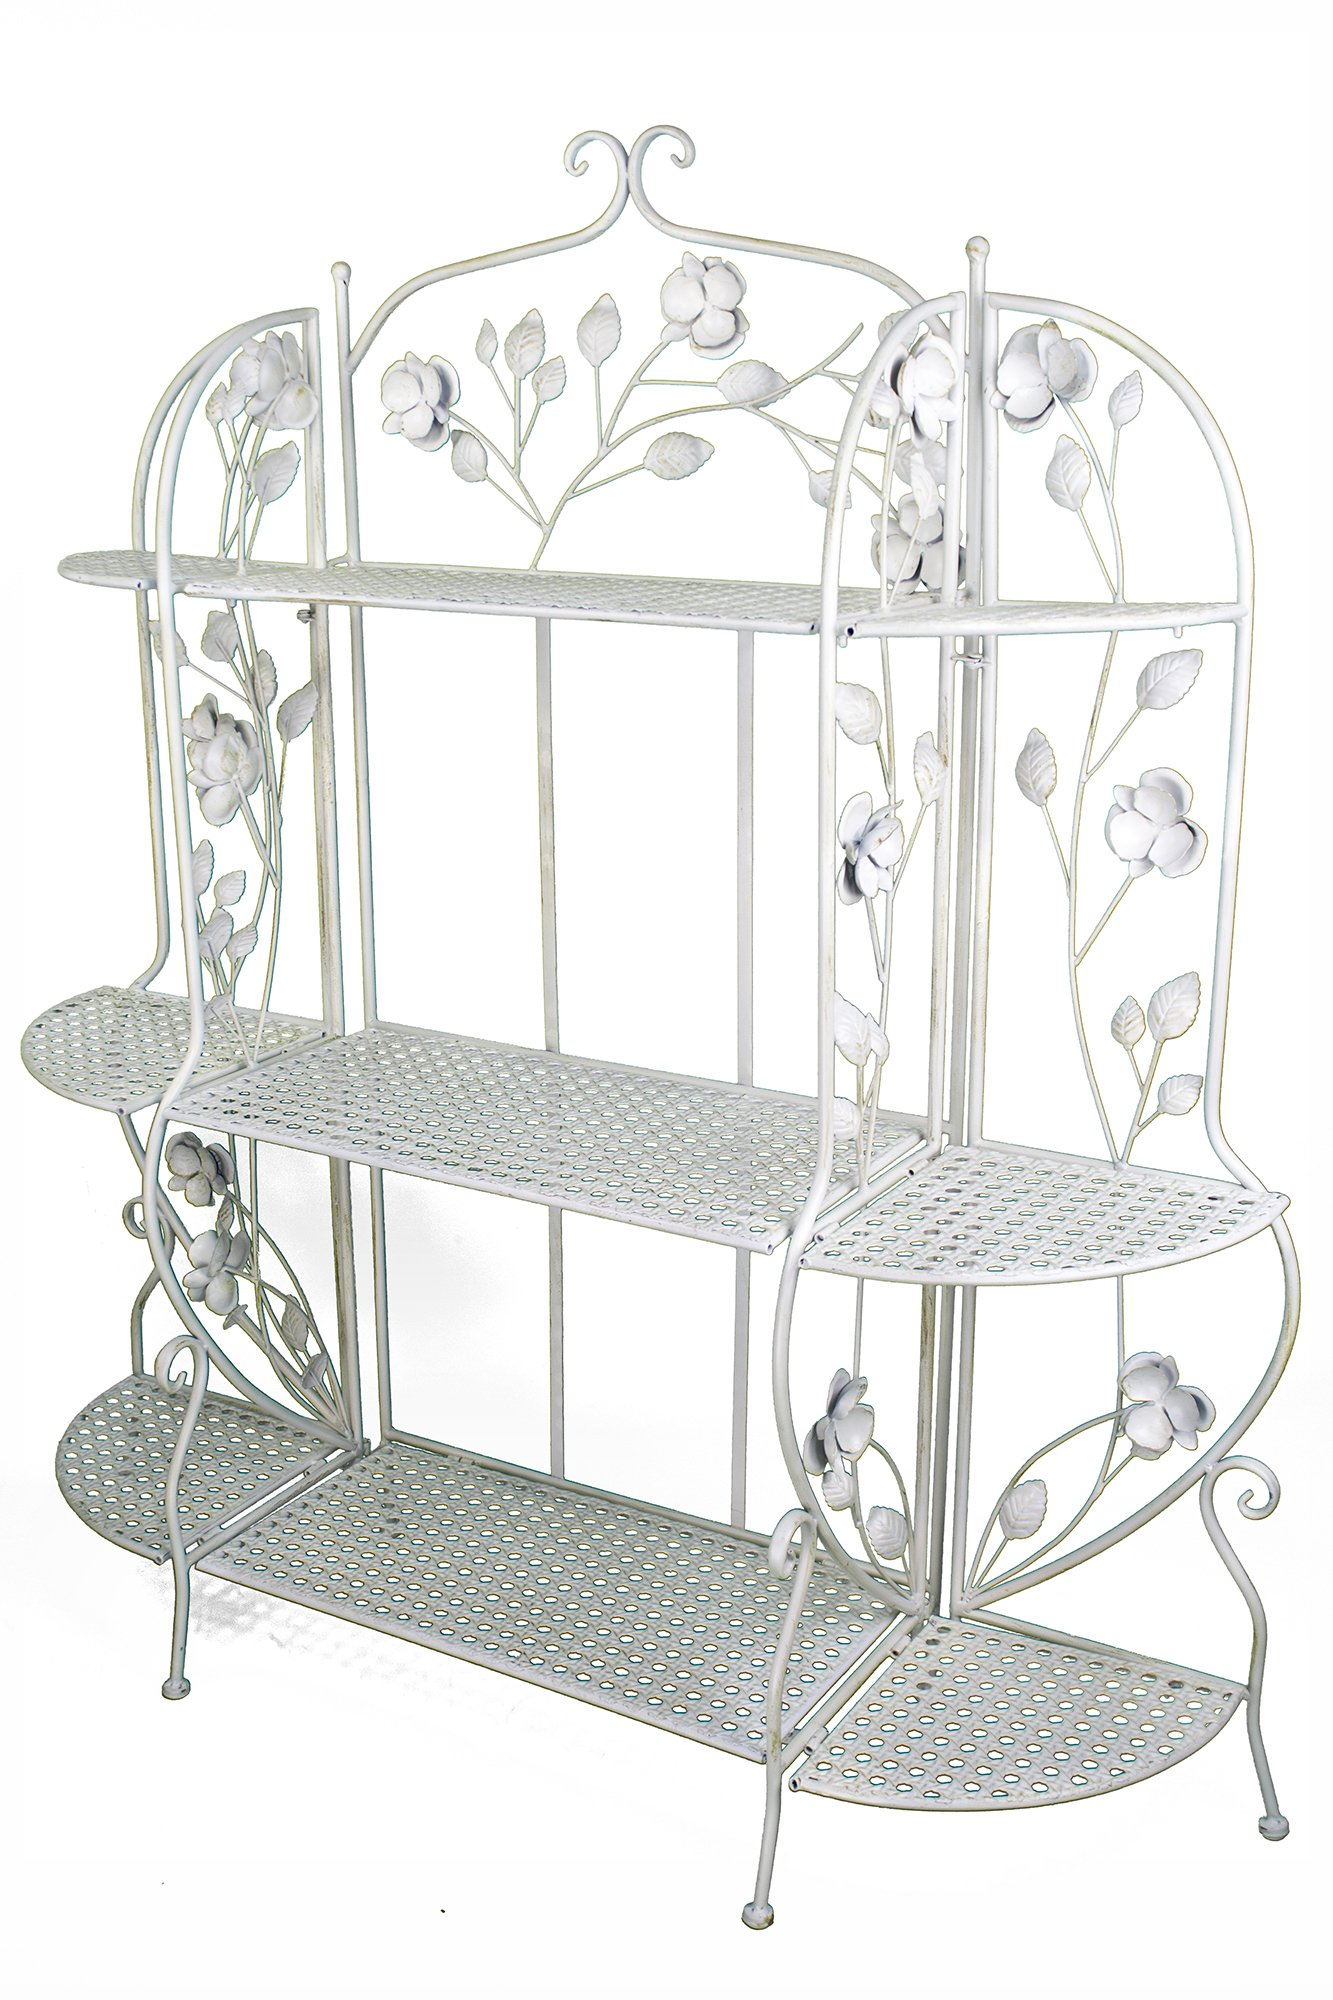 Heather Ann Creations W190944-AWHT Rosella Large Bakers Rack, Antique White by Heather Ann Creations (Image #1)